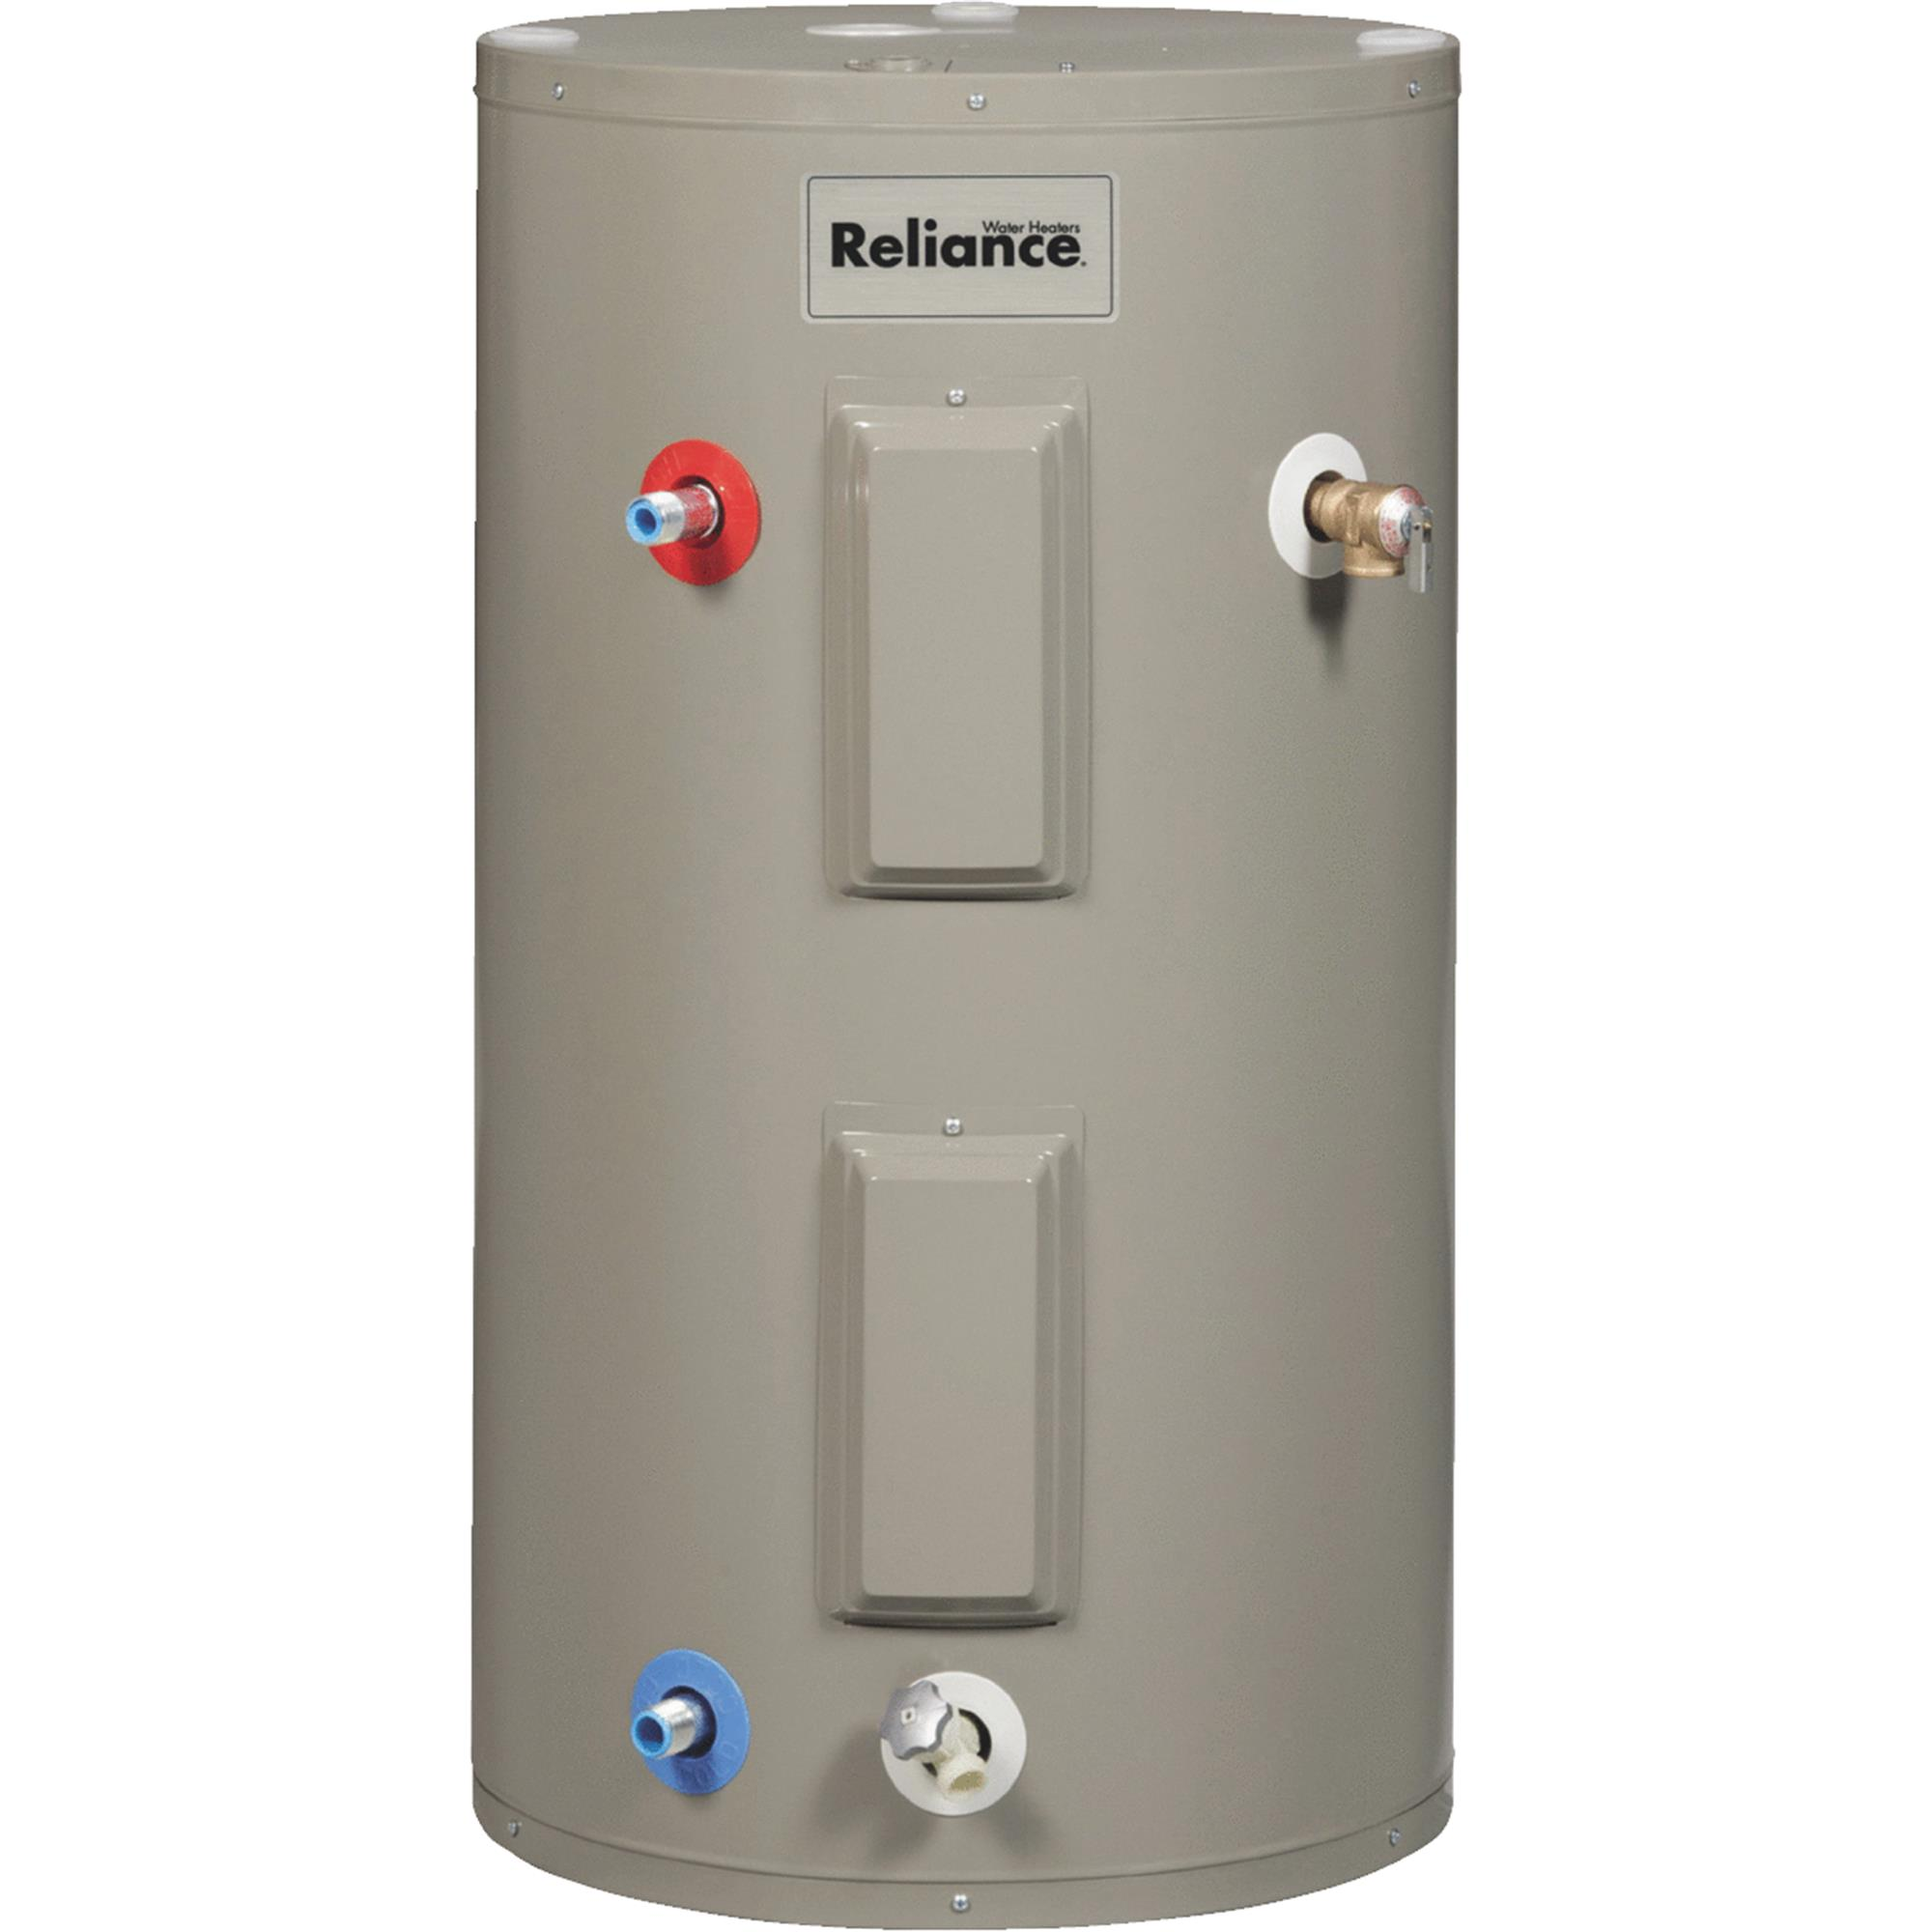 Reliance 30gal Electric Water Heater for Mobile Home